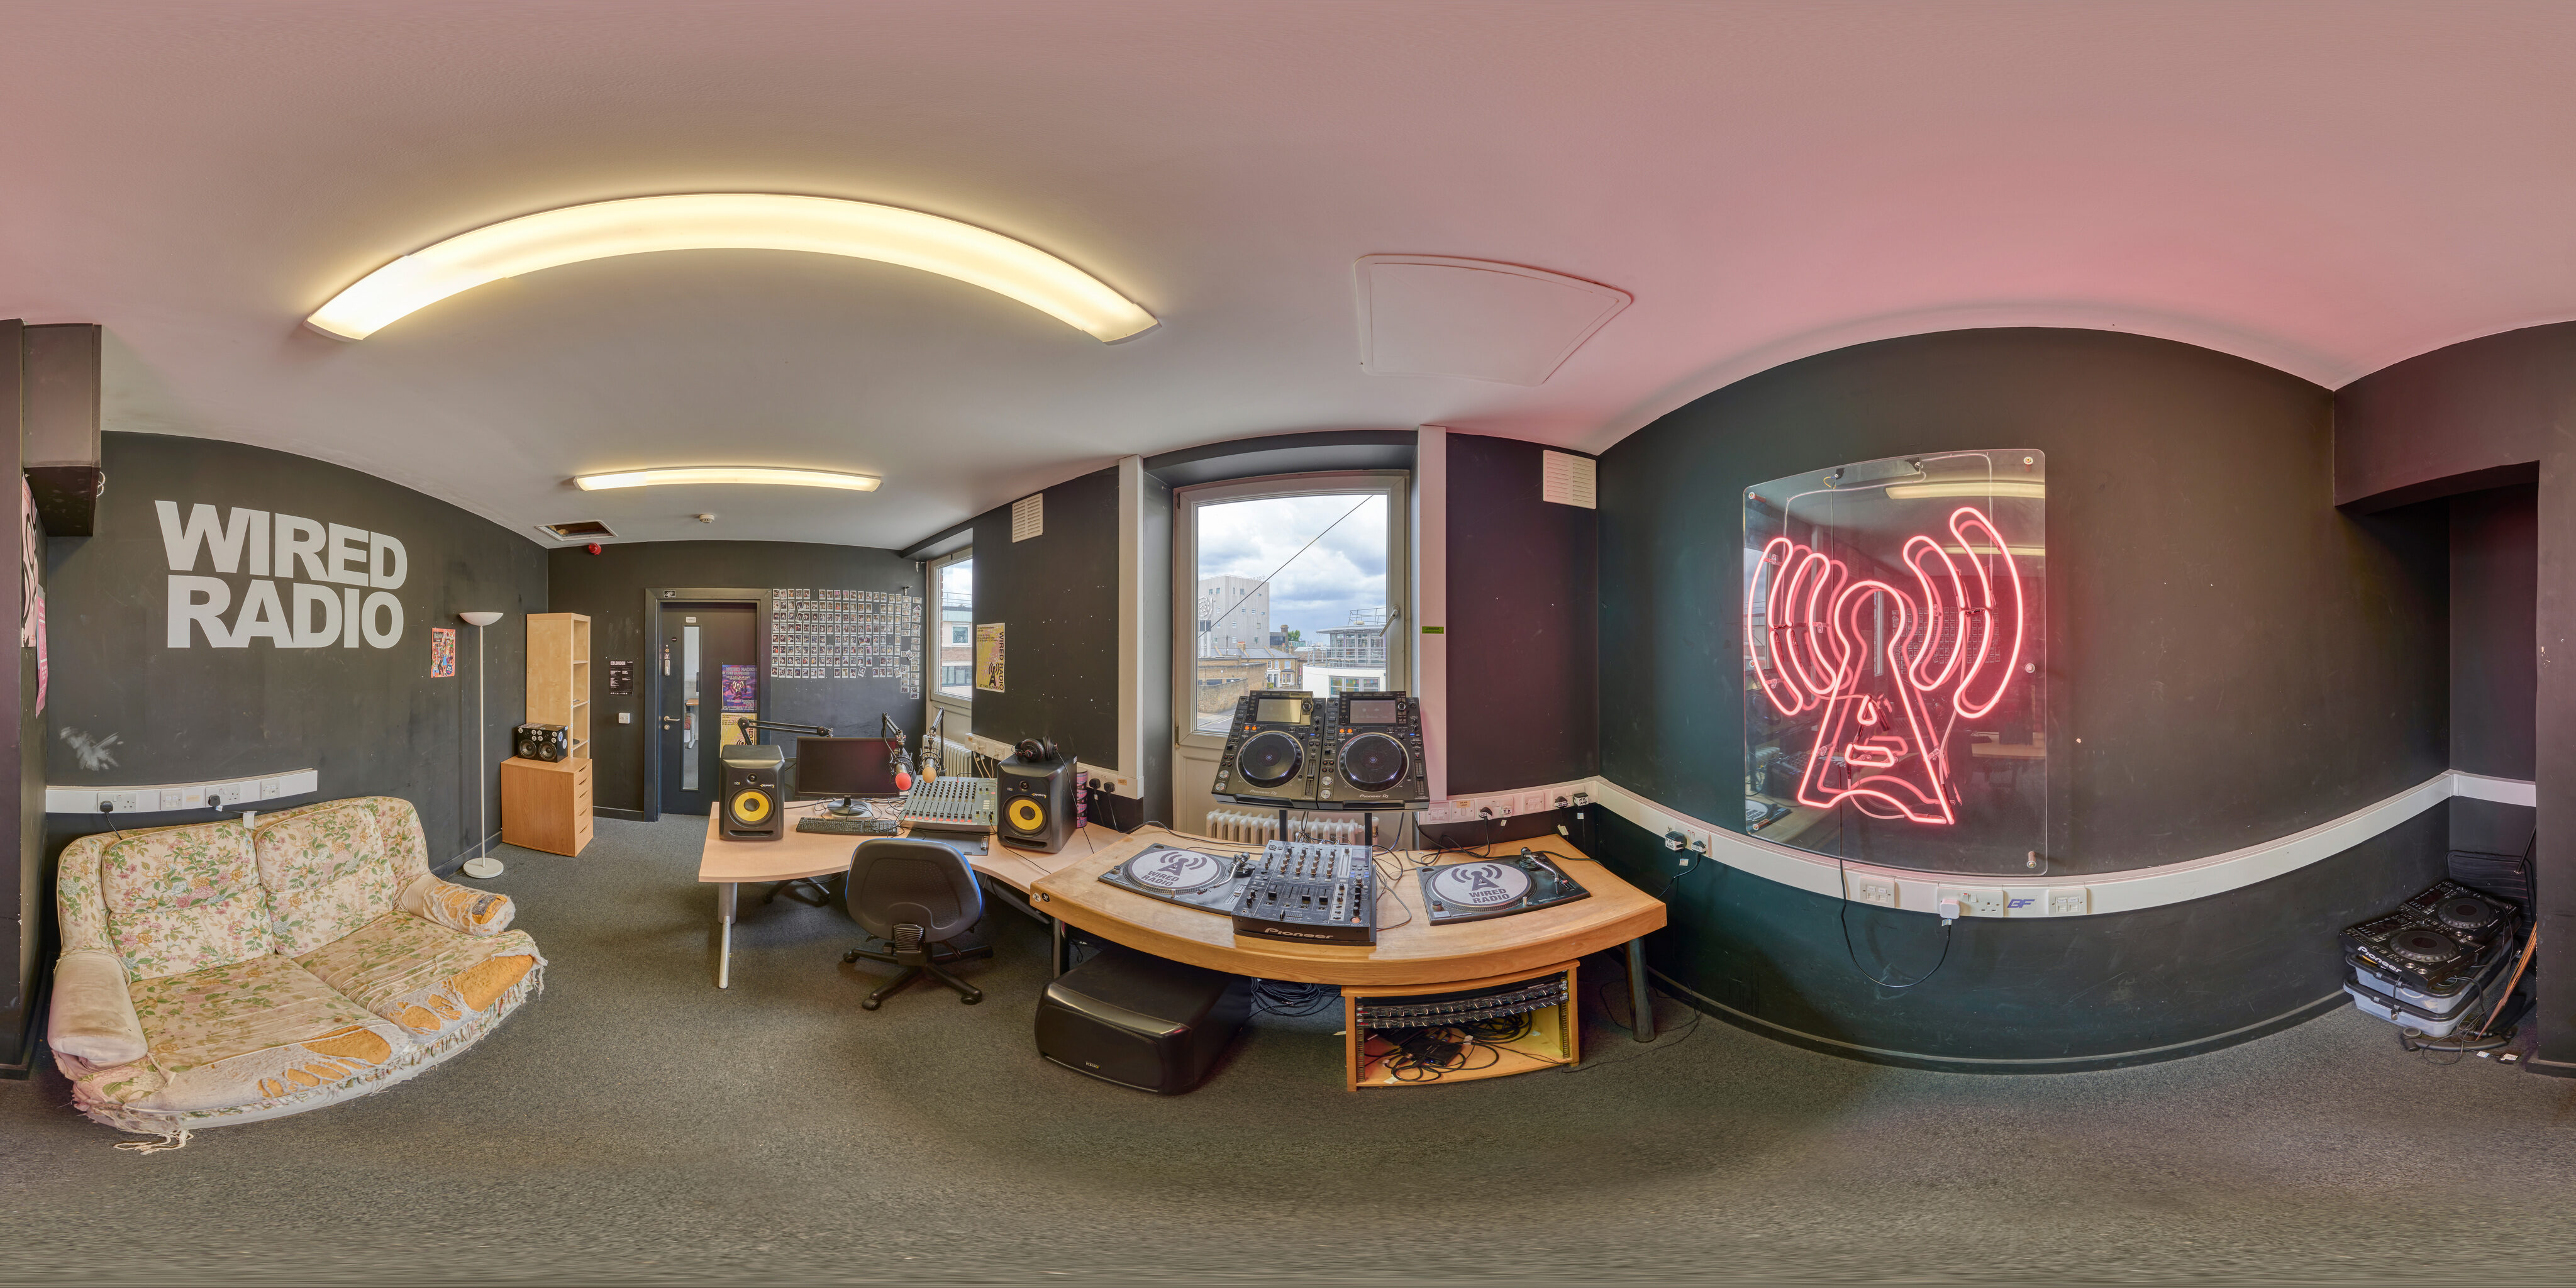 360 of Wired Radio